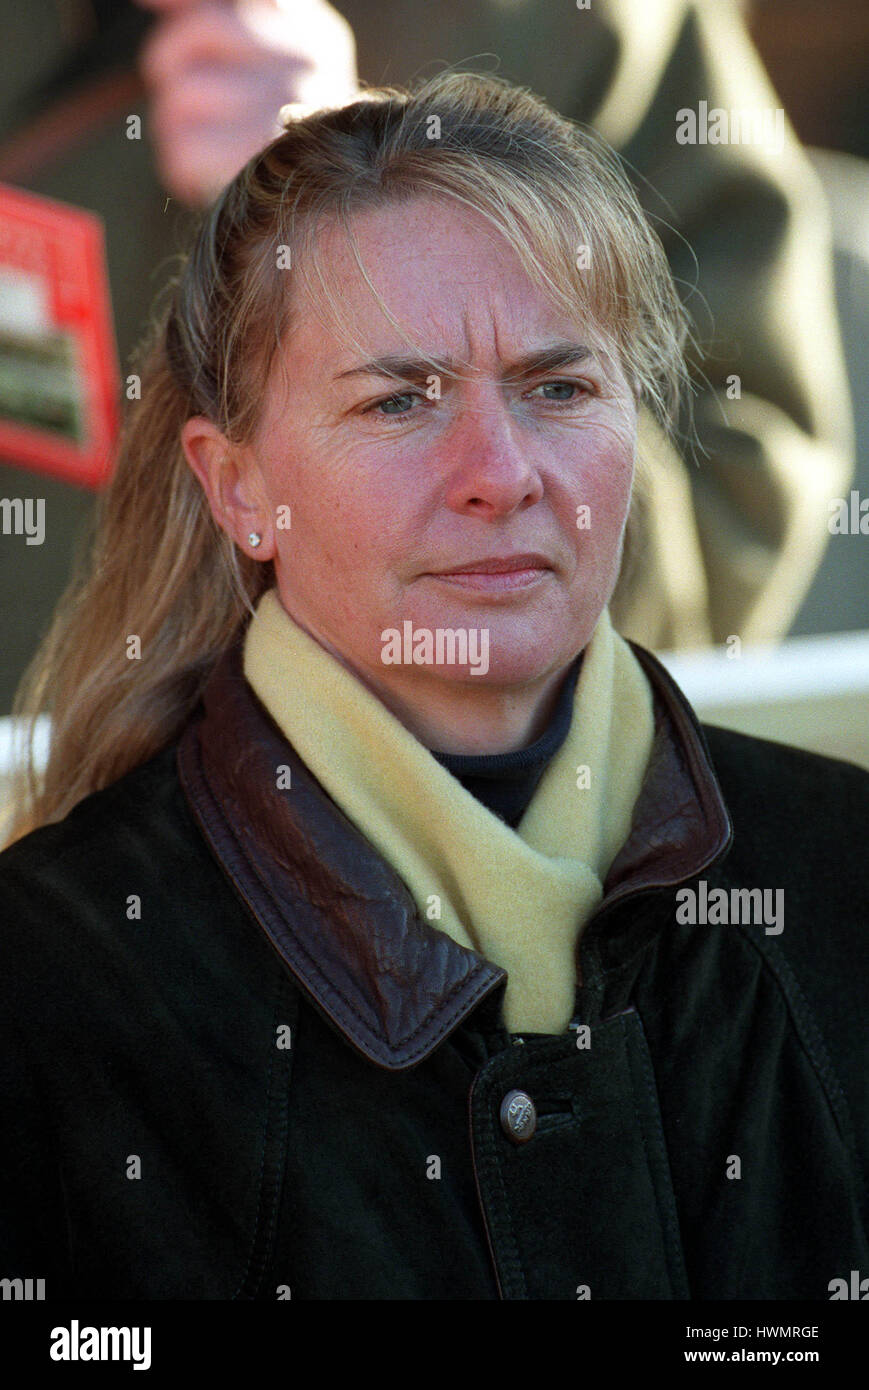 MRS S.J.SMITH RACE HORSE TRAINER 19 January 2000 - Stock Image